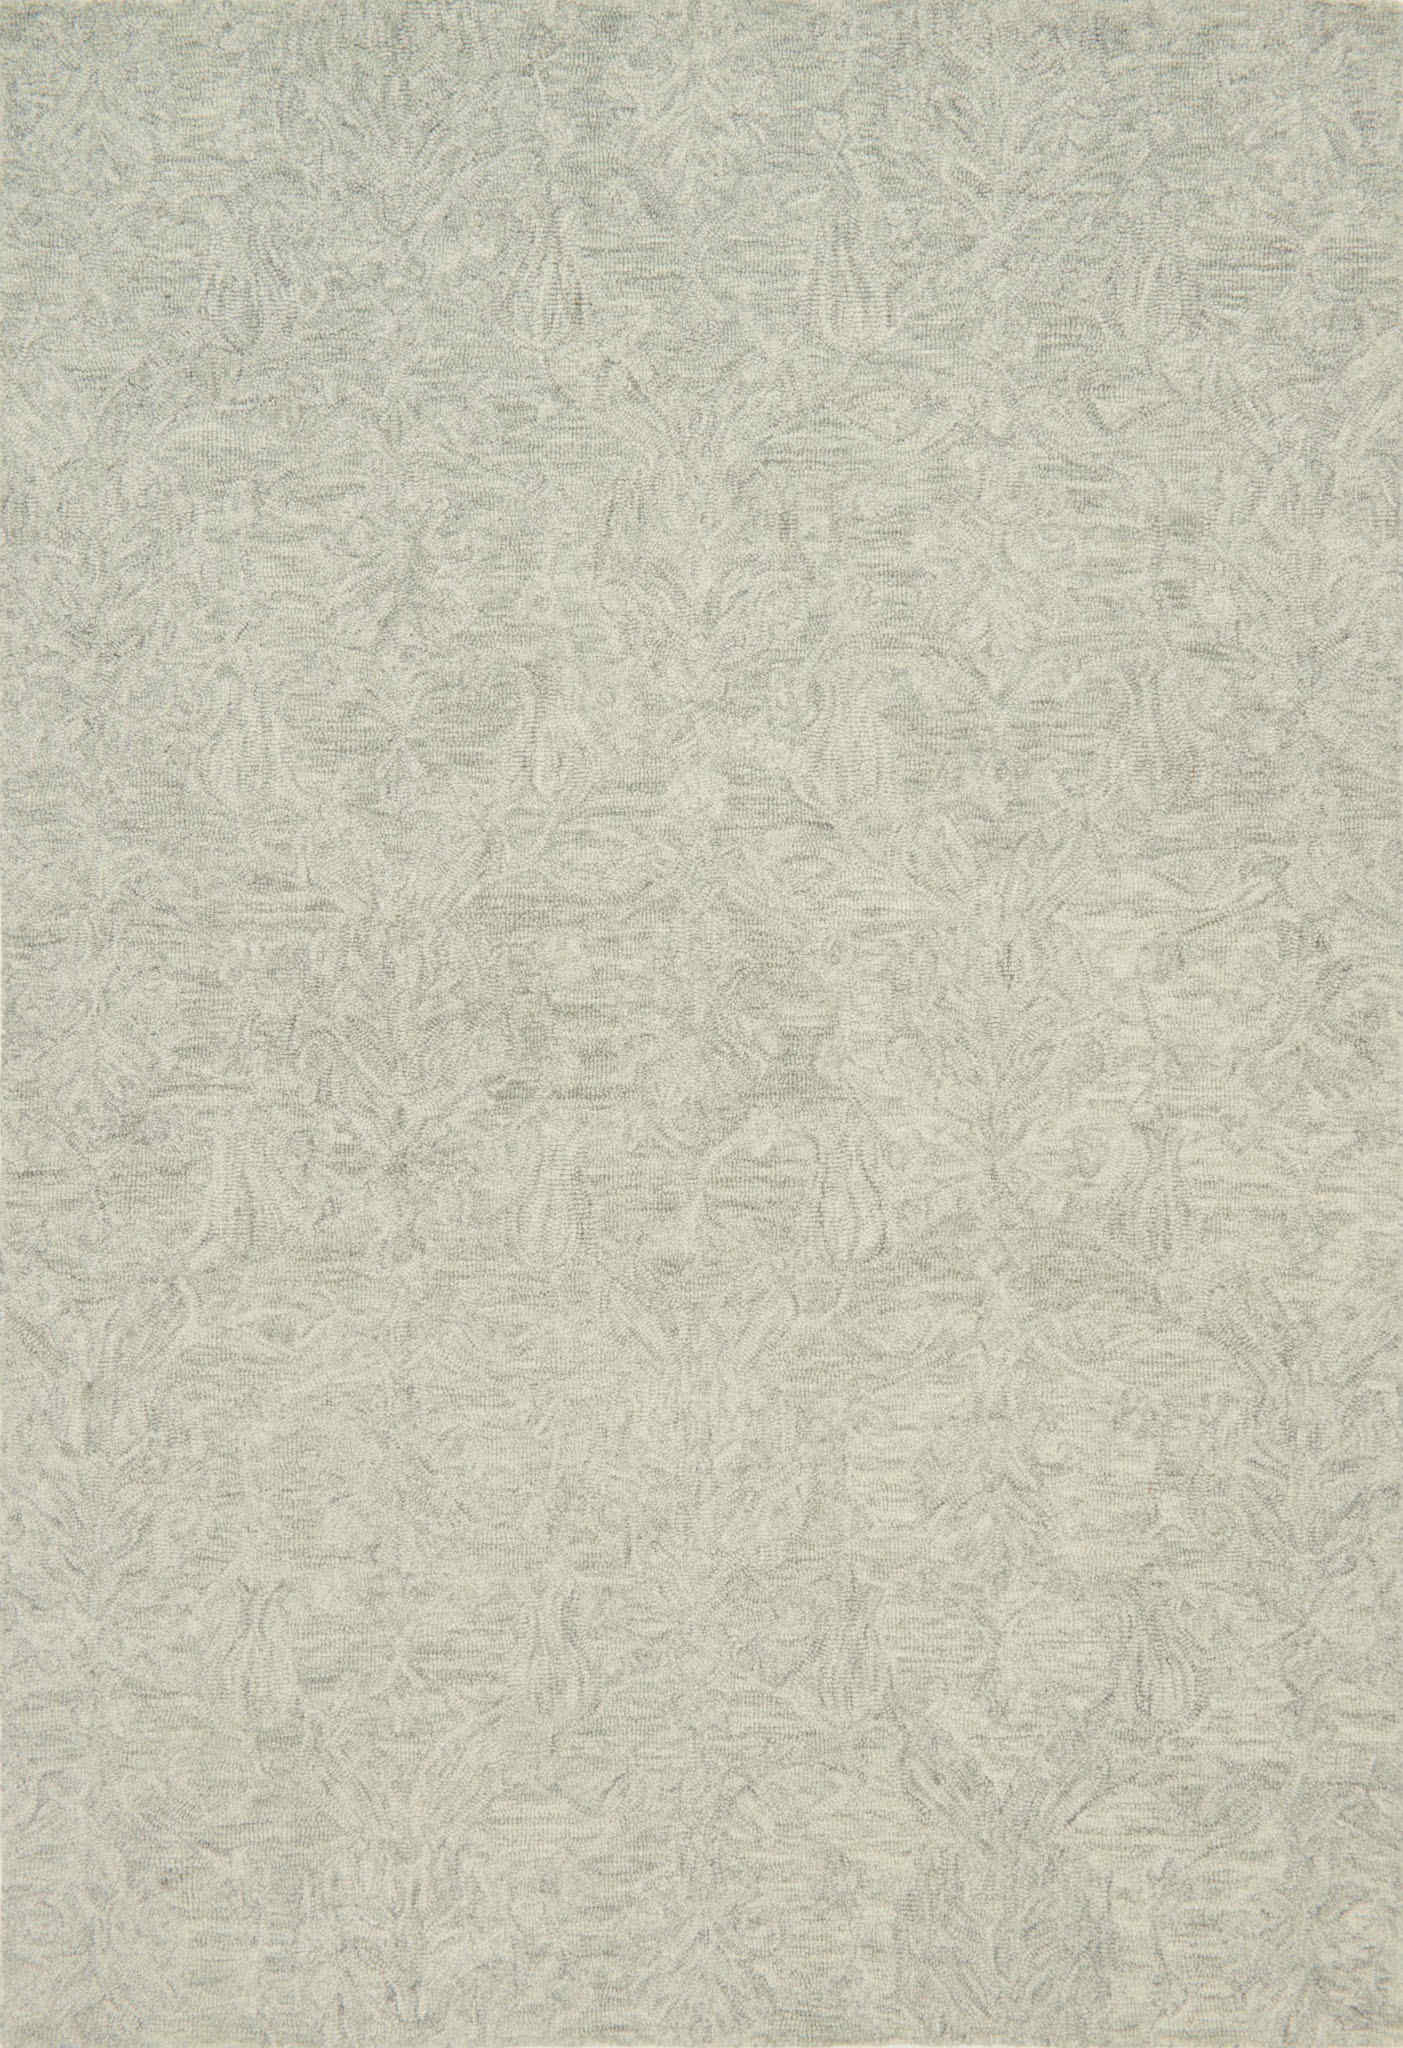 Loloi Lyle Mist Transitional Rug